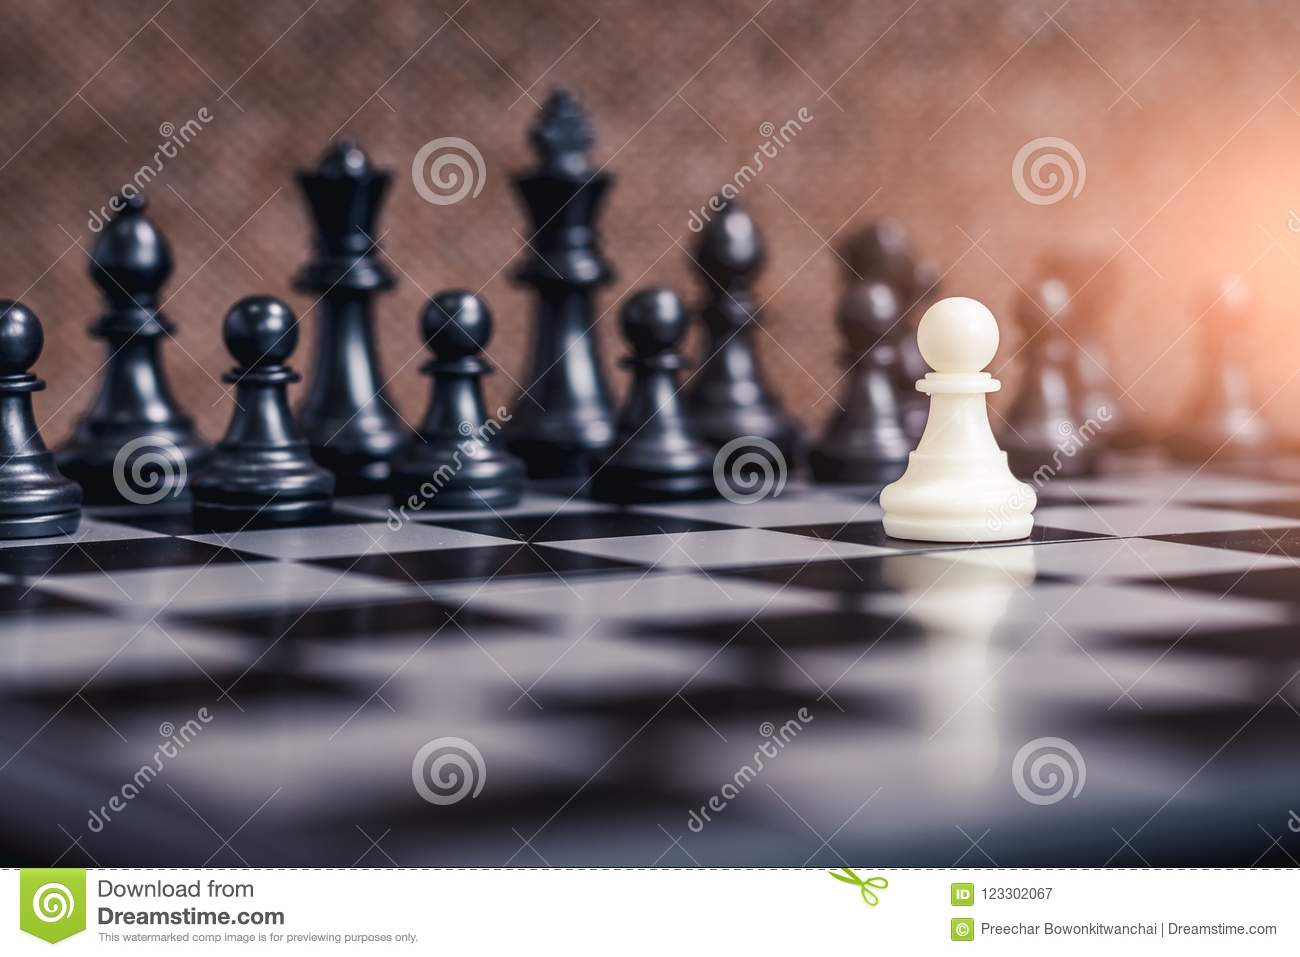 The abstract image of the white chessman face to face on the chess board.